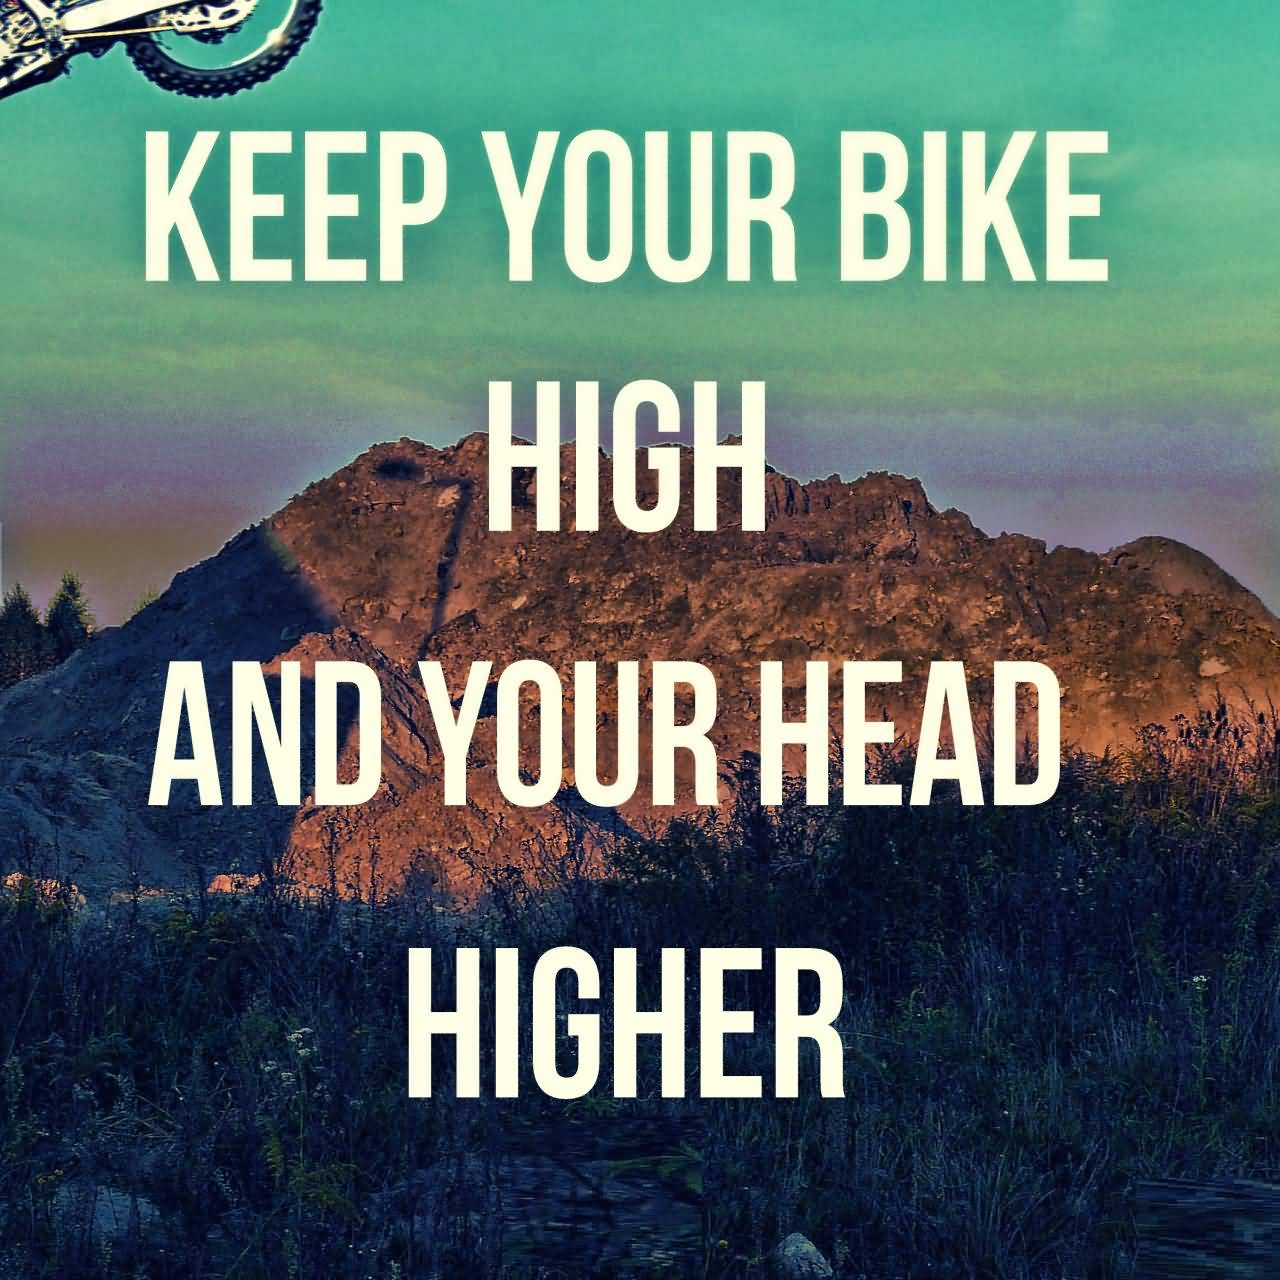 Keep Your Bike High And Your Head Higher